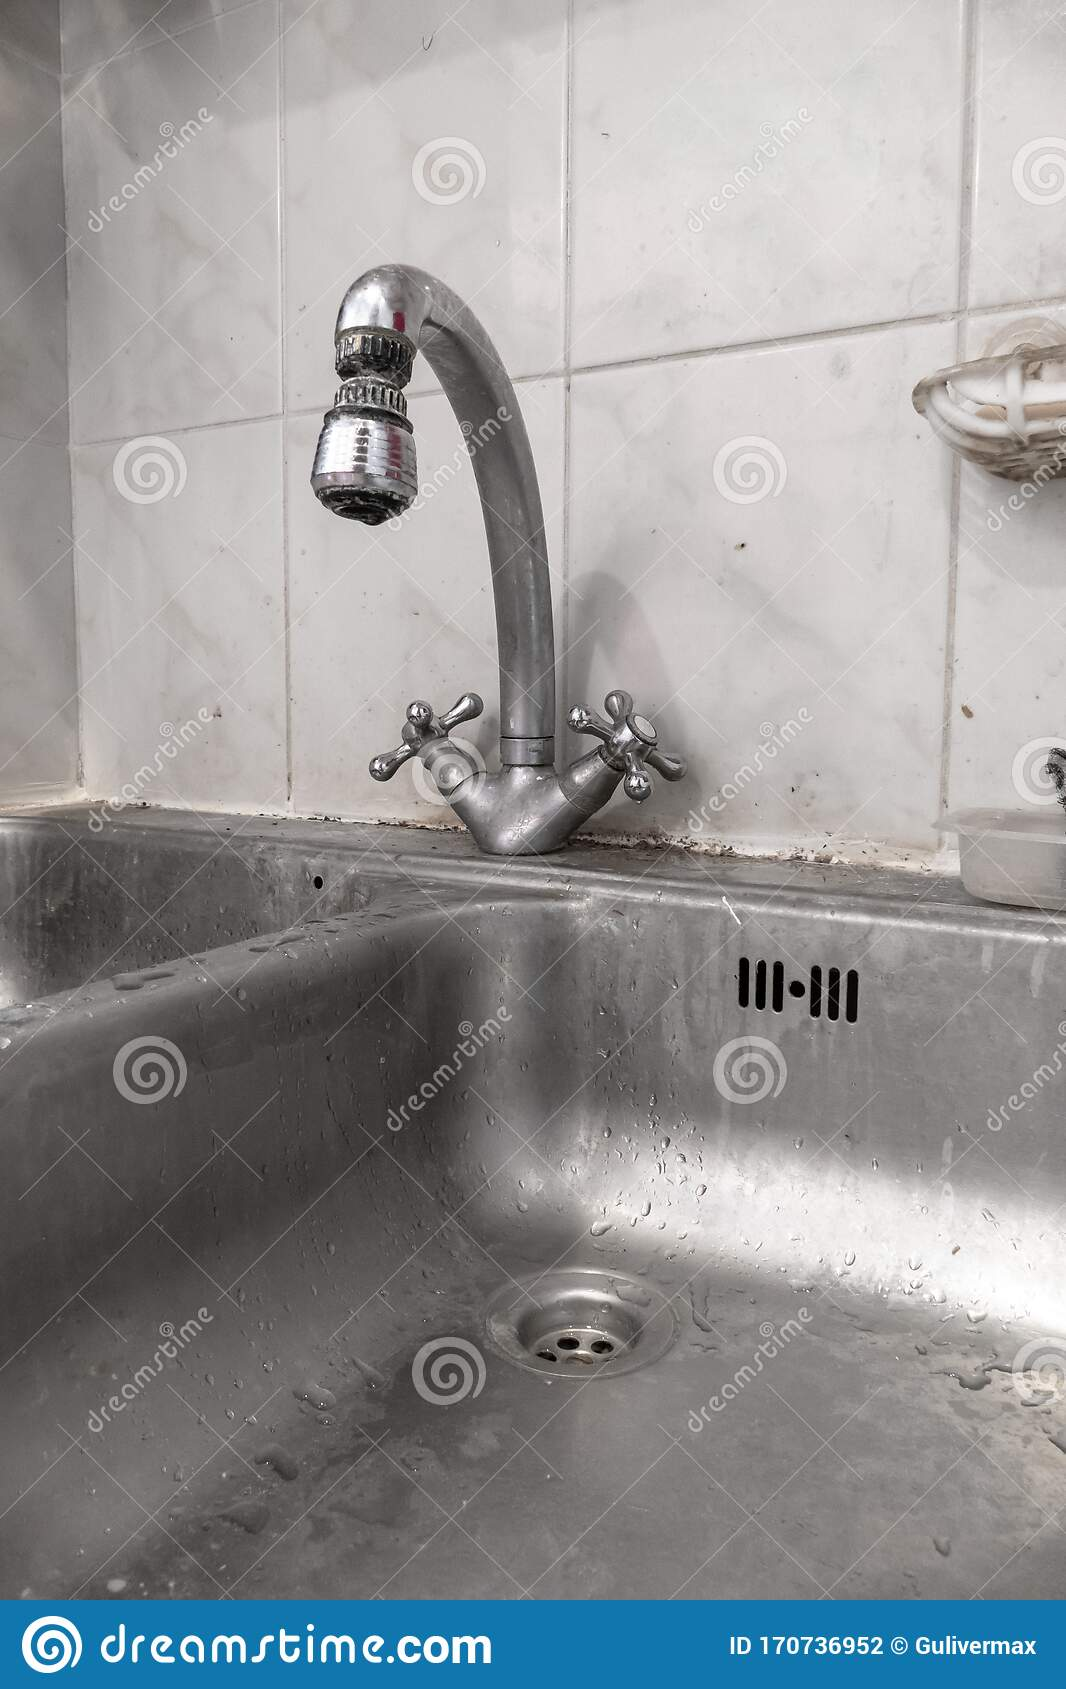 Kitchen Faucet With Dripping Water Close Up Stock Photo Image Of Metal Food 170736952